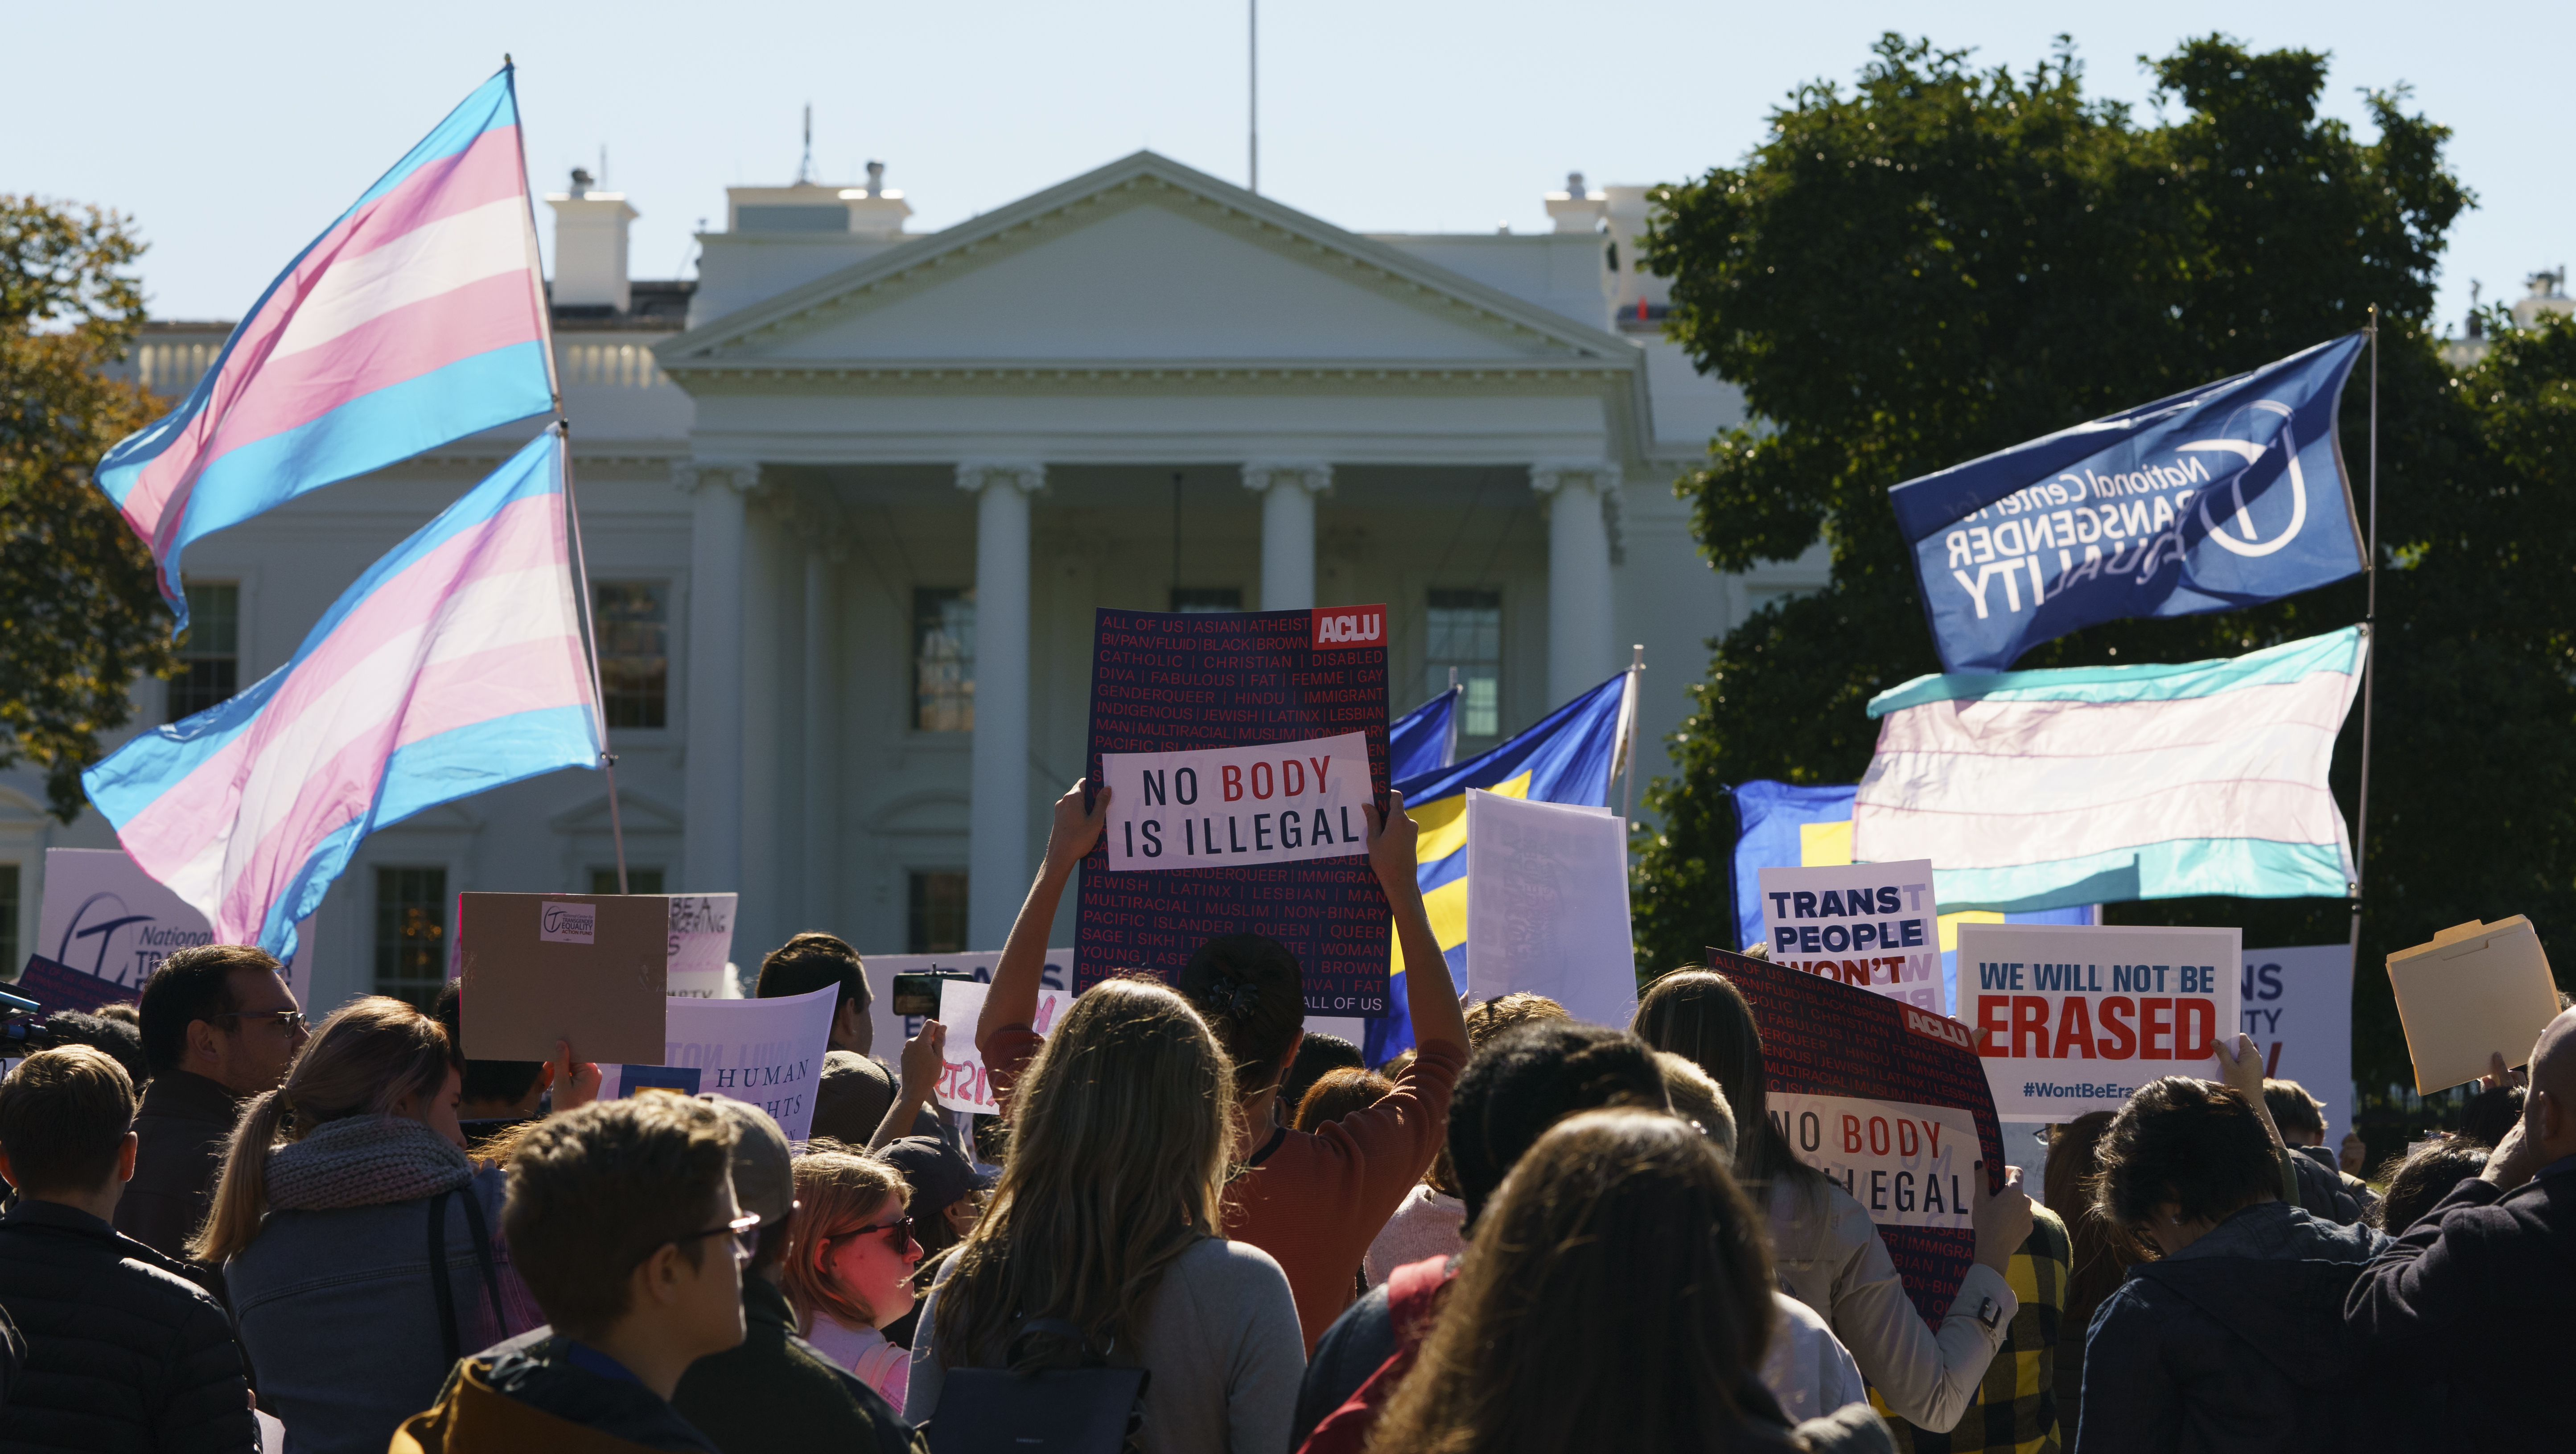 Protestors with the National Center for Transgender Equality (NCTE) and the Human Rights Campaign gather in front of the White House on Oct. 22, 2018, for a #WontBeErased rally.